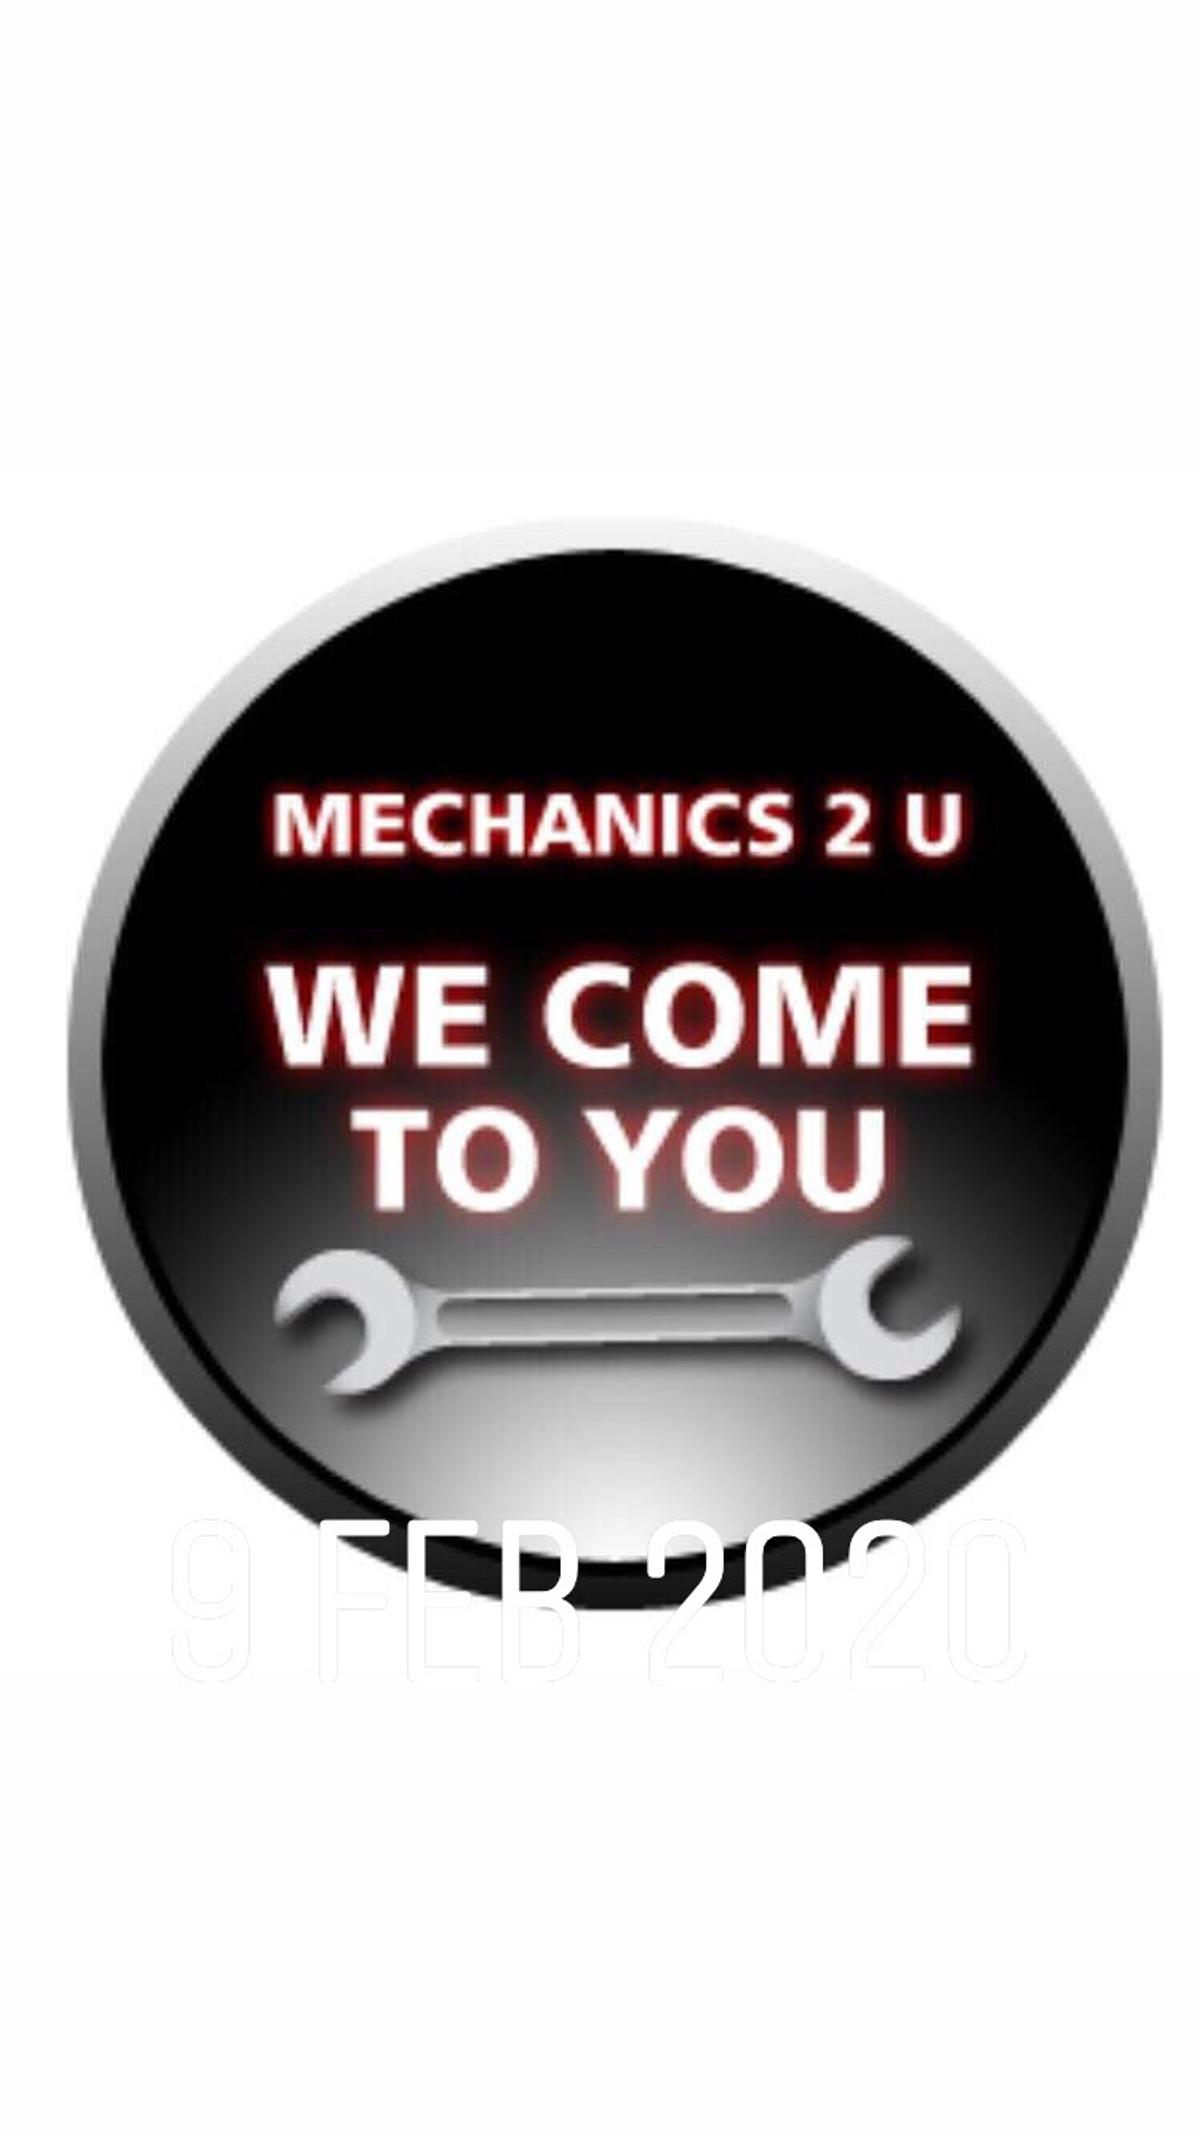 ALFRETON MOBILE MECHANICS Mobile car repair service WE COME TO YOU At your home or place of work. Based in Alfreton and covering surrounding areas. Have you car repaired or serviced at home on your drive. Established since 2007 Full insurance covering your vehicle and our mechanics whilst on your property ( documents available ). Car repairs Servicing Diagnostics Etc Tel / Text. 07495 - 213420